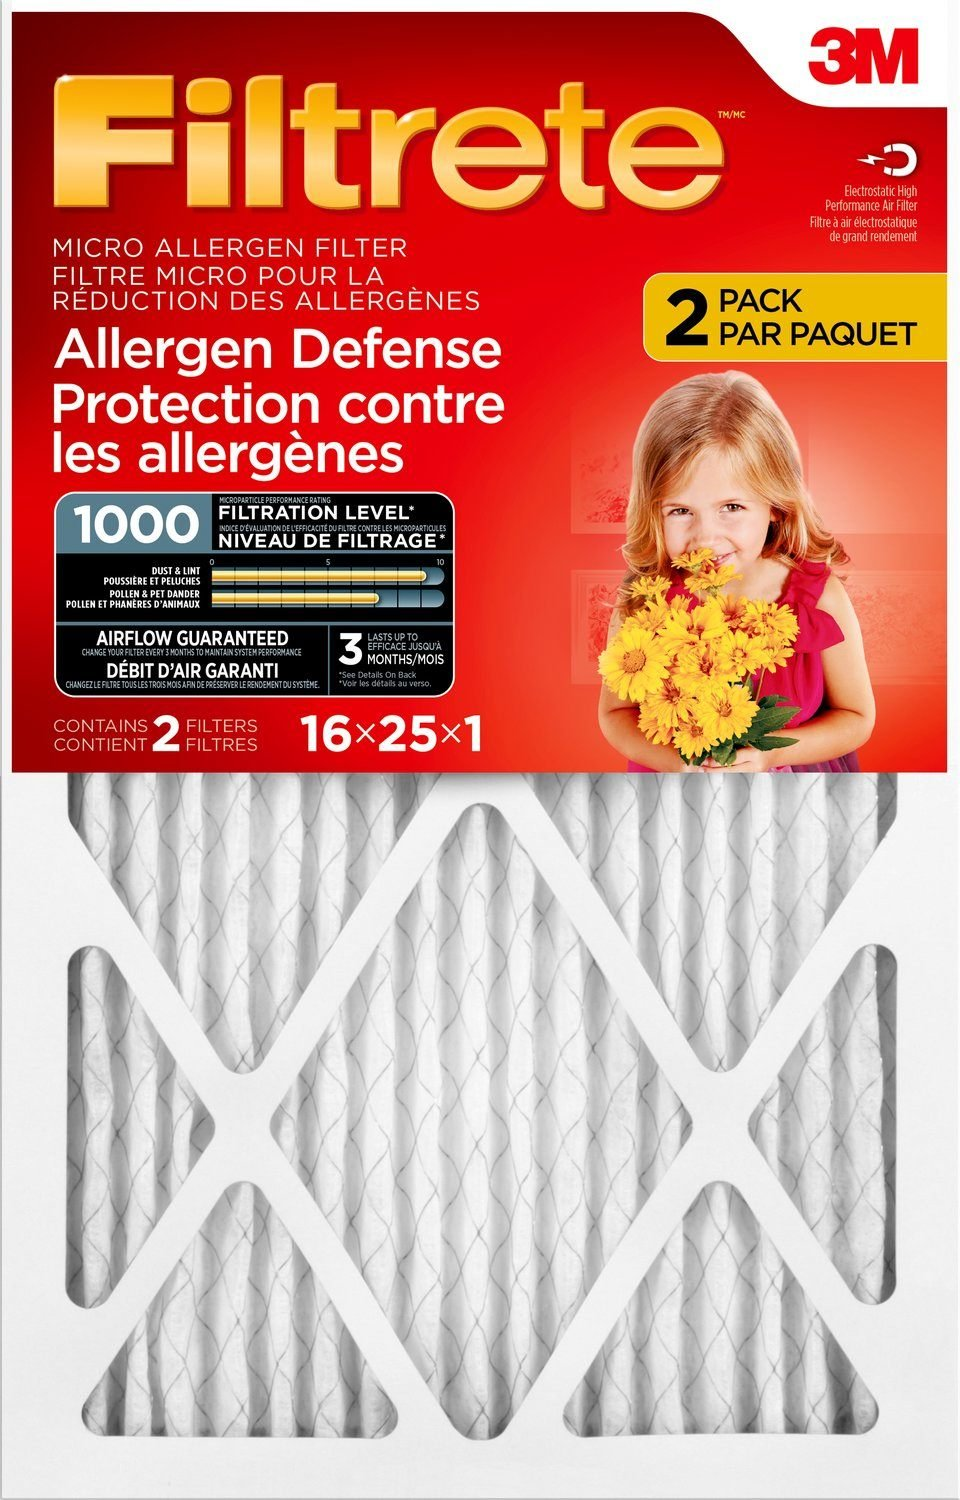 Filtrete MPR 1000 16 x 25 x 1 Micro Allergen Defense AC Furnace Air Filter,